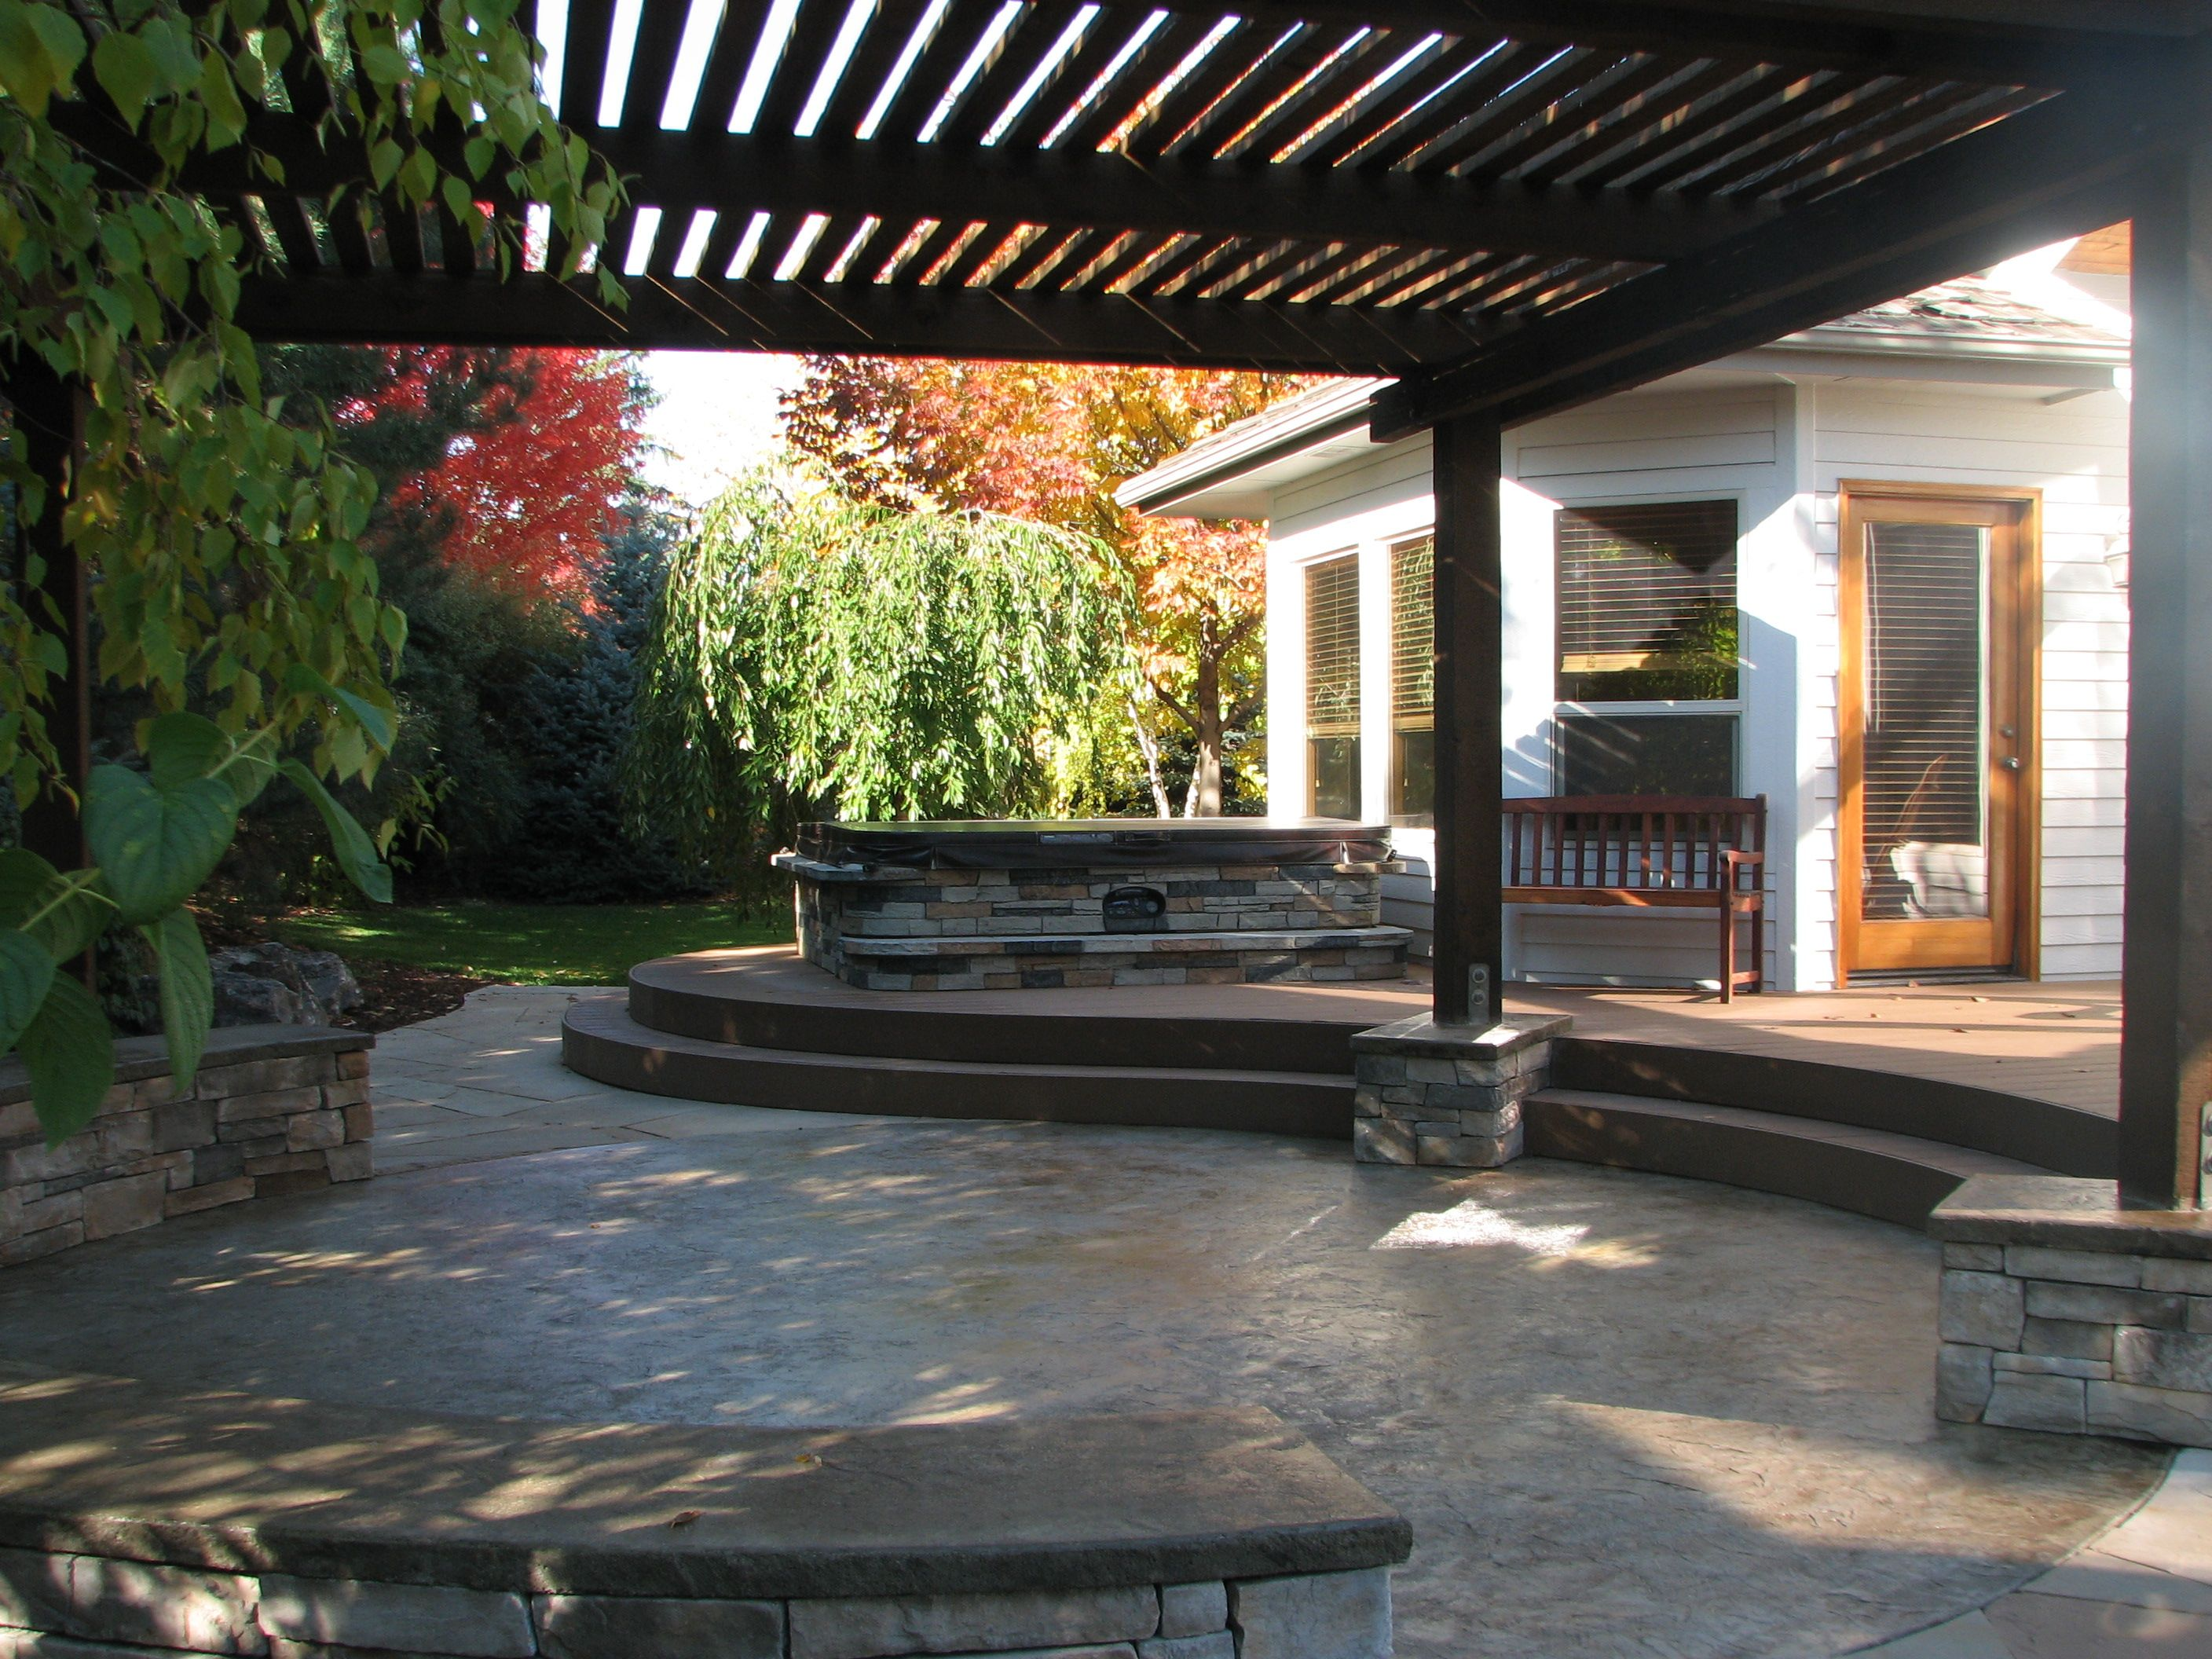 curved deck, patio, hot tub and timber shade structure | landscape ... - Patio Shade Structure Ideas